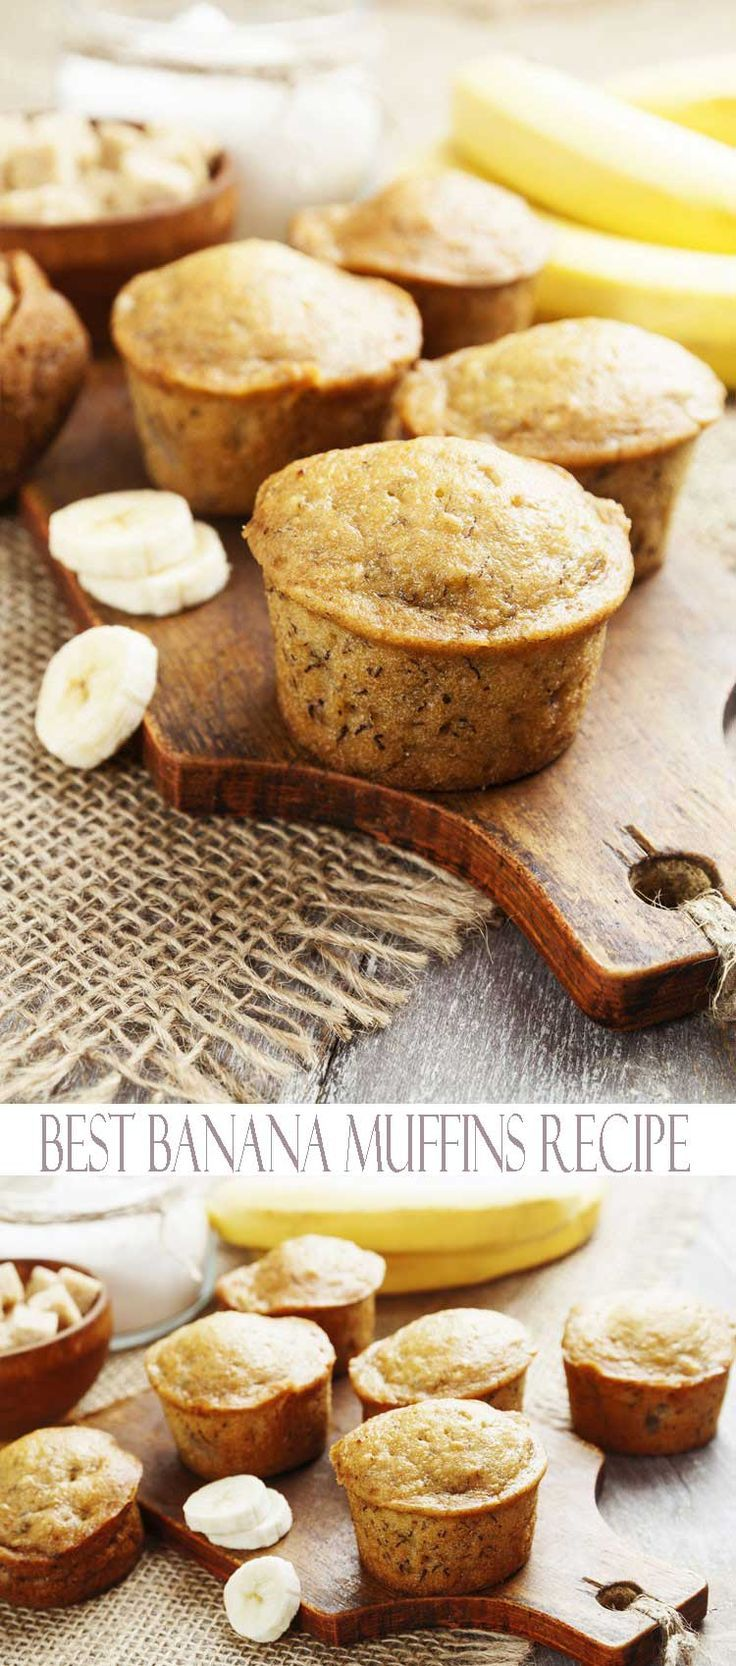 Perfect Banana Muffins. This easy muffin recipe is so simple to bake that is is a perfect for those who have little to no experience in the kitchen. These moist muffins are a great breakfast recipe, but they also make nice after school snacks. Looking for